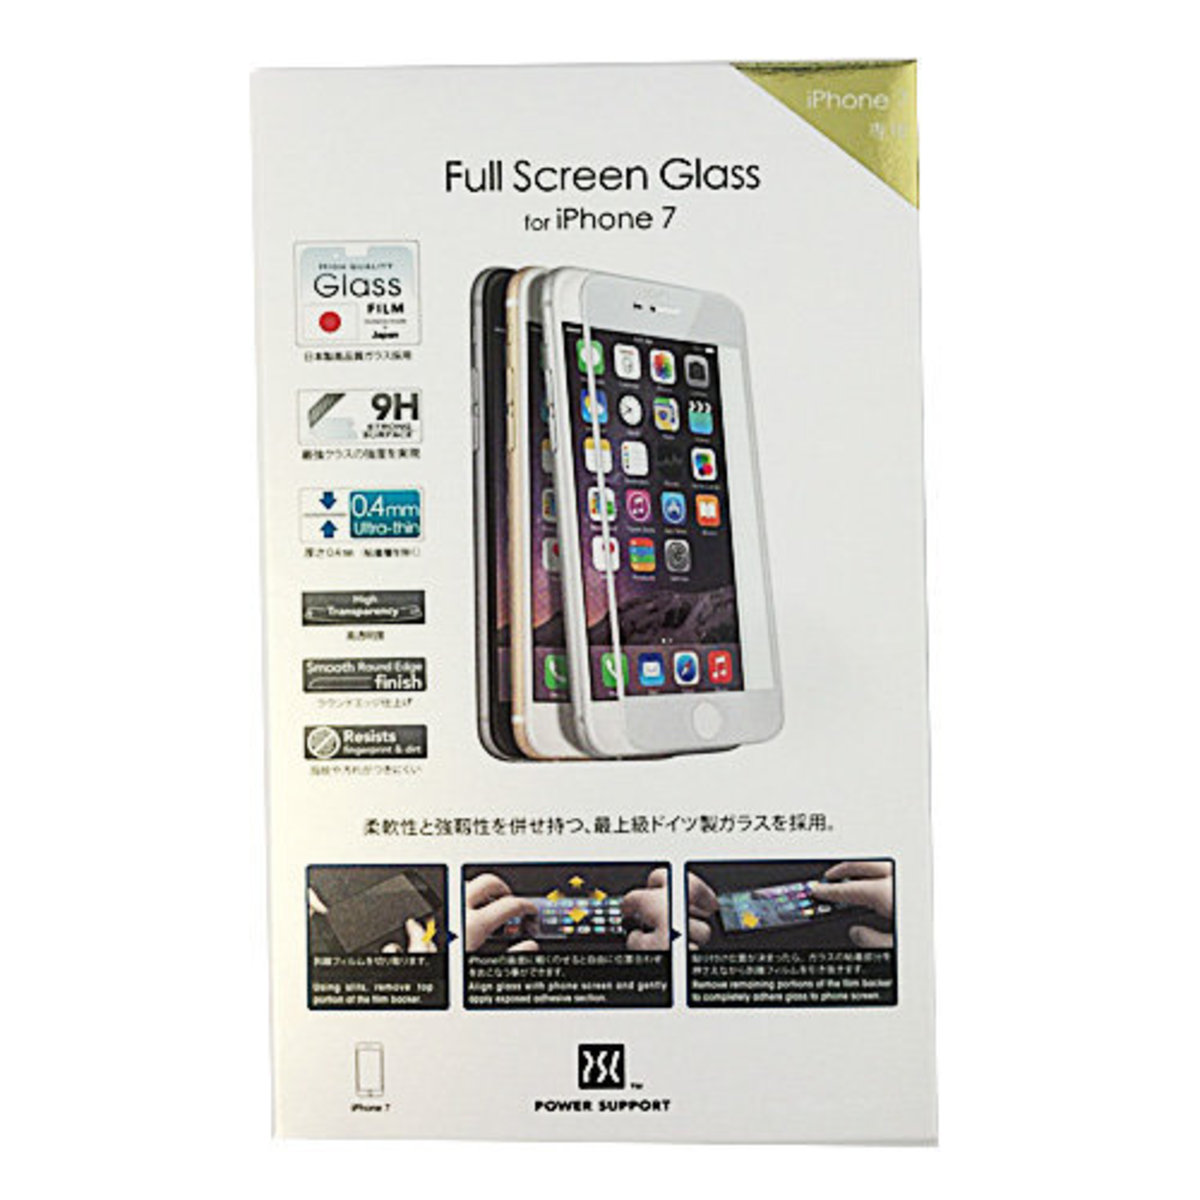 2.5D Full Screen Glass Film for iPhone 7 全屏玻璃保護貼